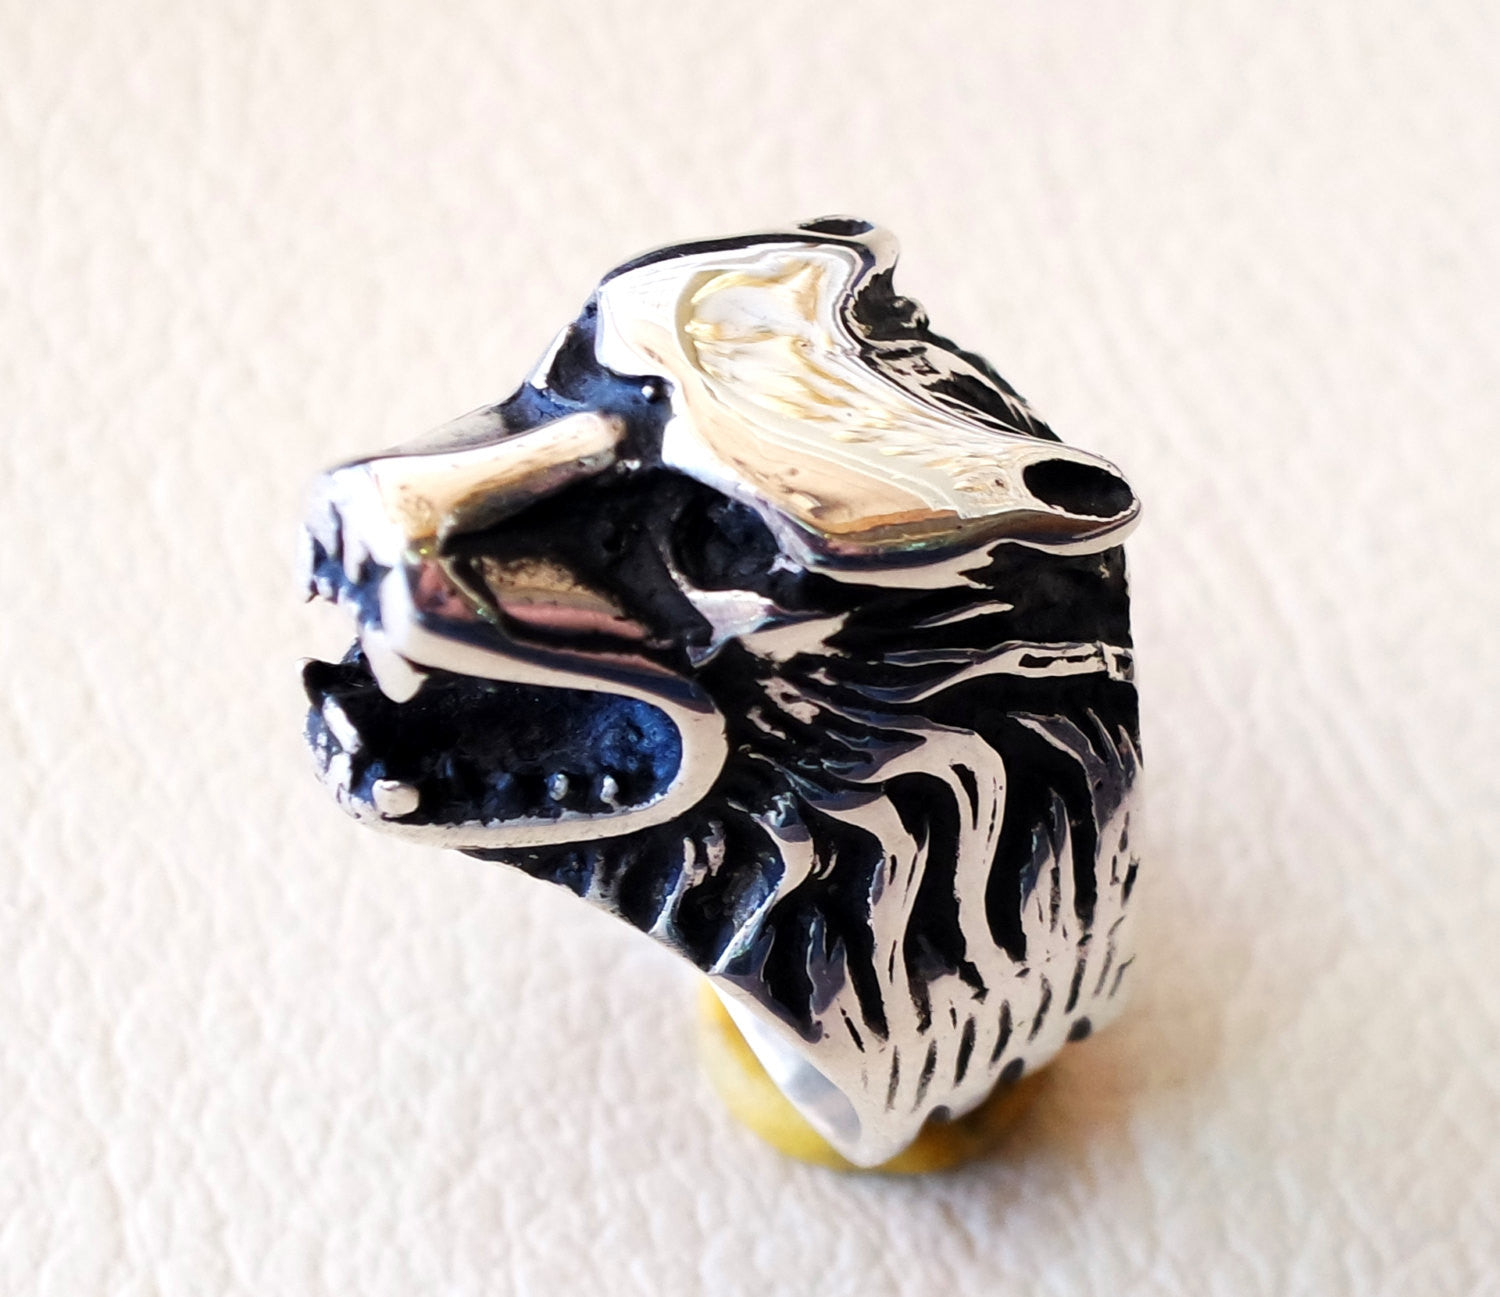 wolf ring heavy sterling silver 925 man biker ring all sizes handmade animal head jewelry fast shipping detailed craftsmanship